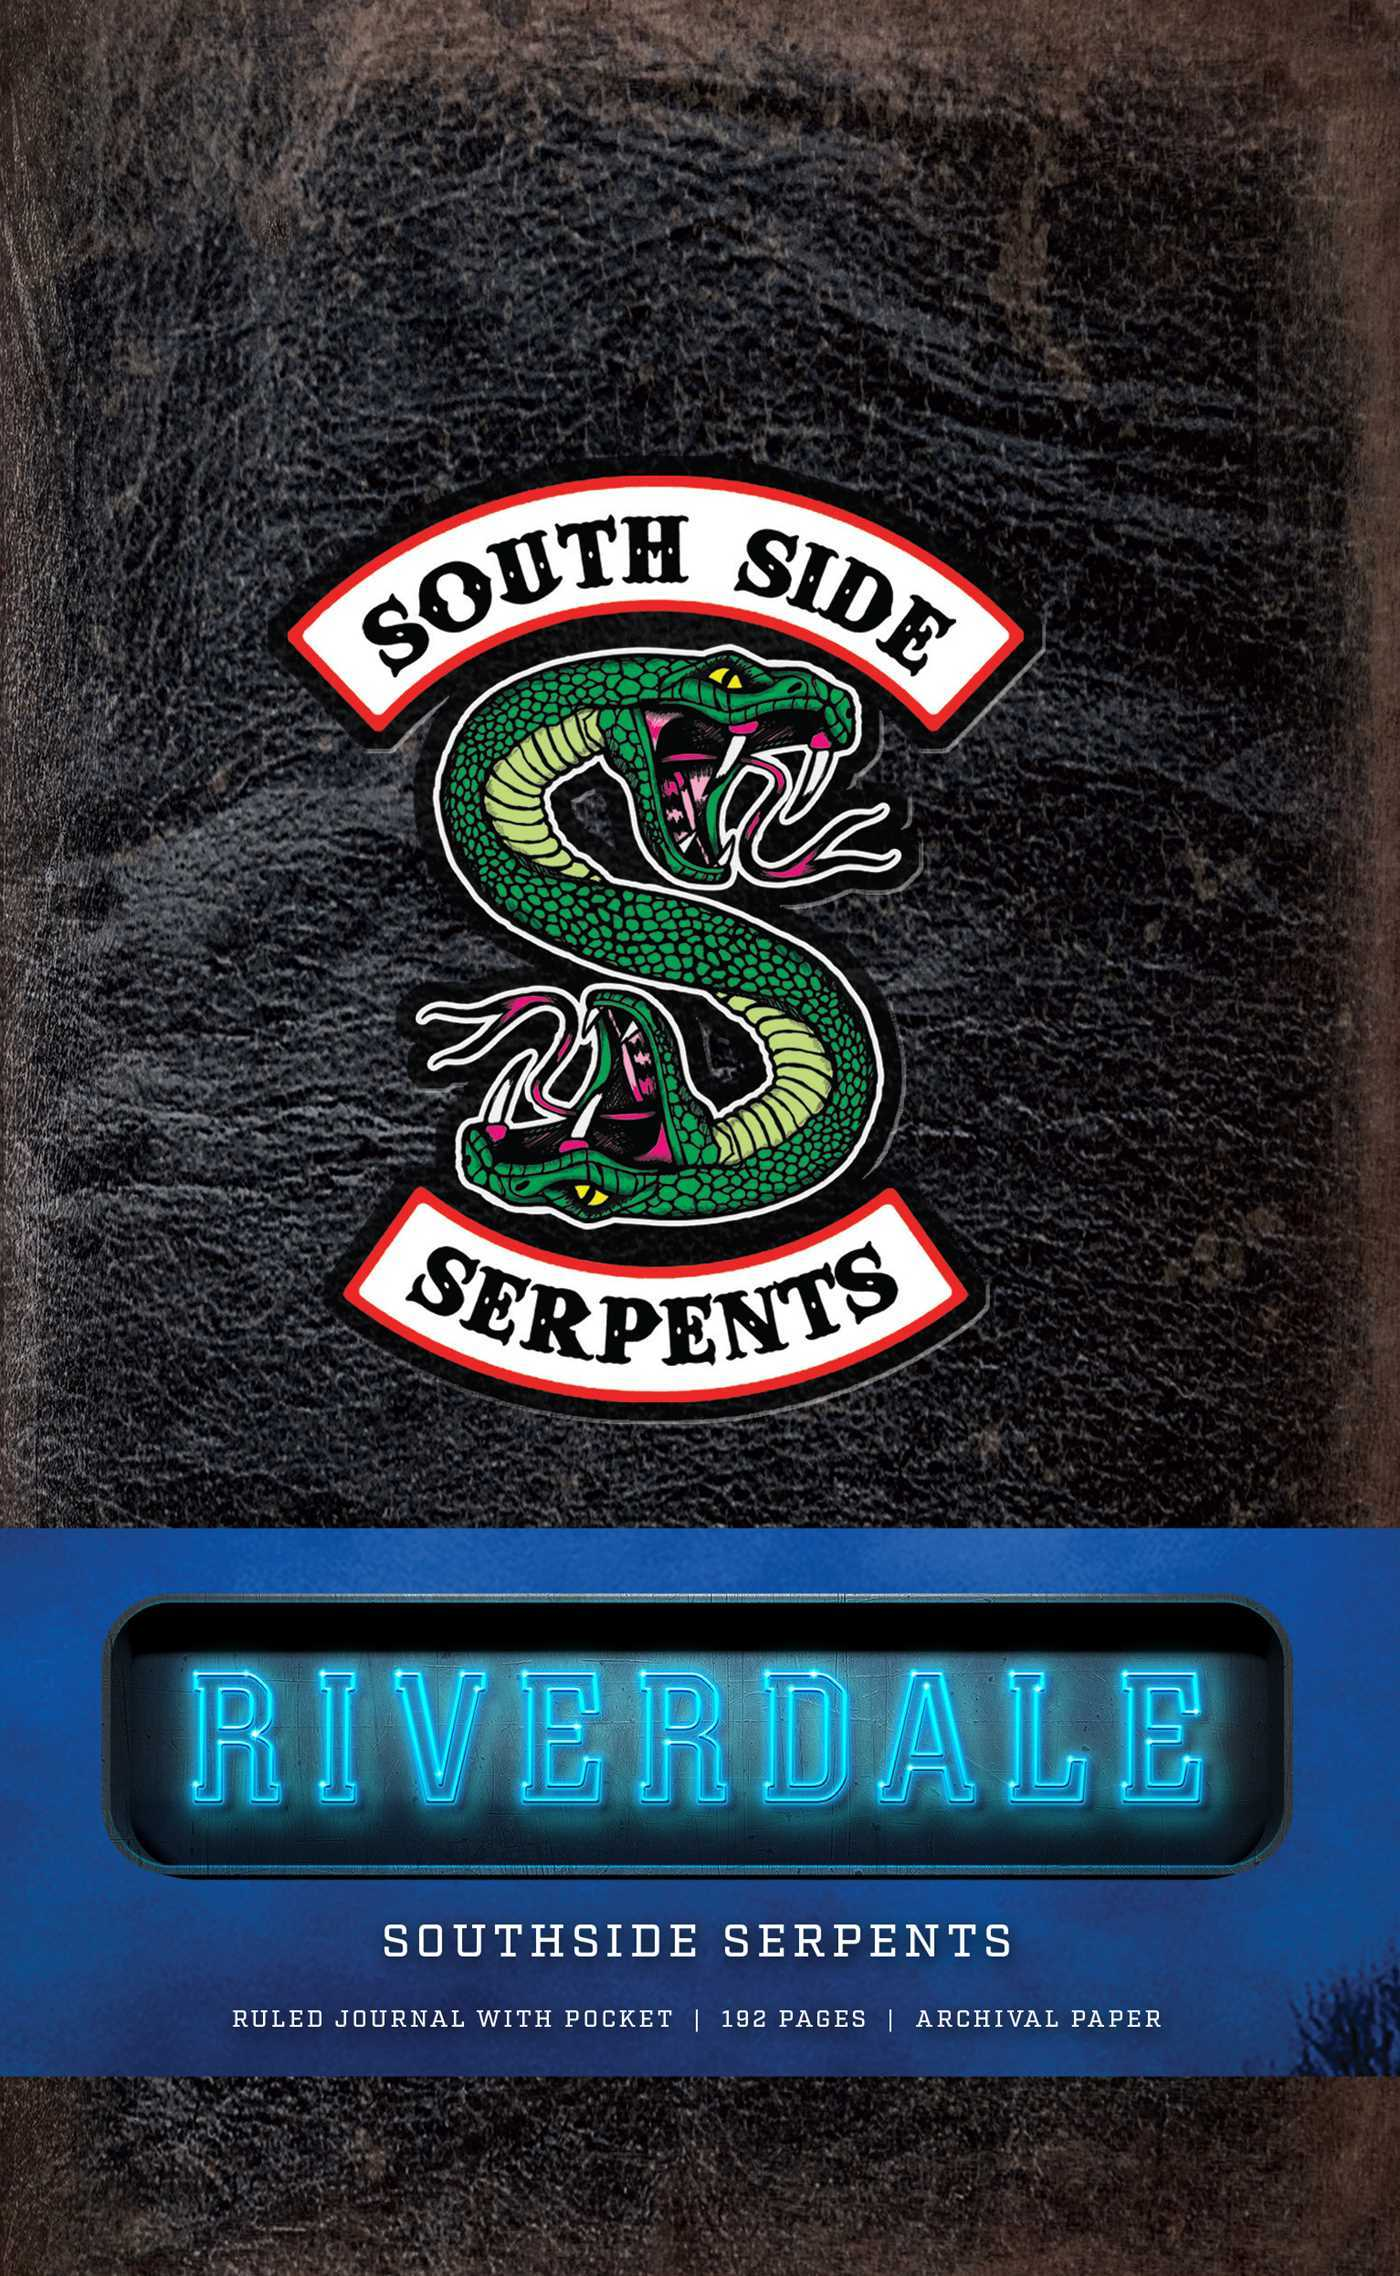 Riverdale Hardcover Ruled Journal: Southside Serpents